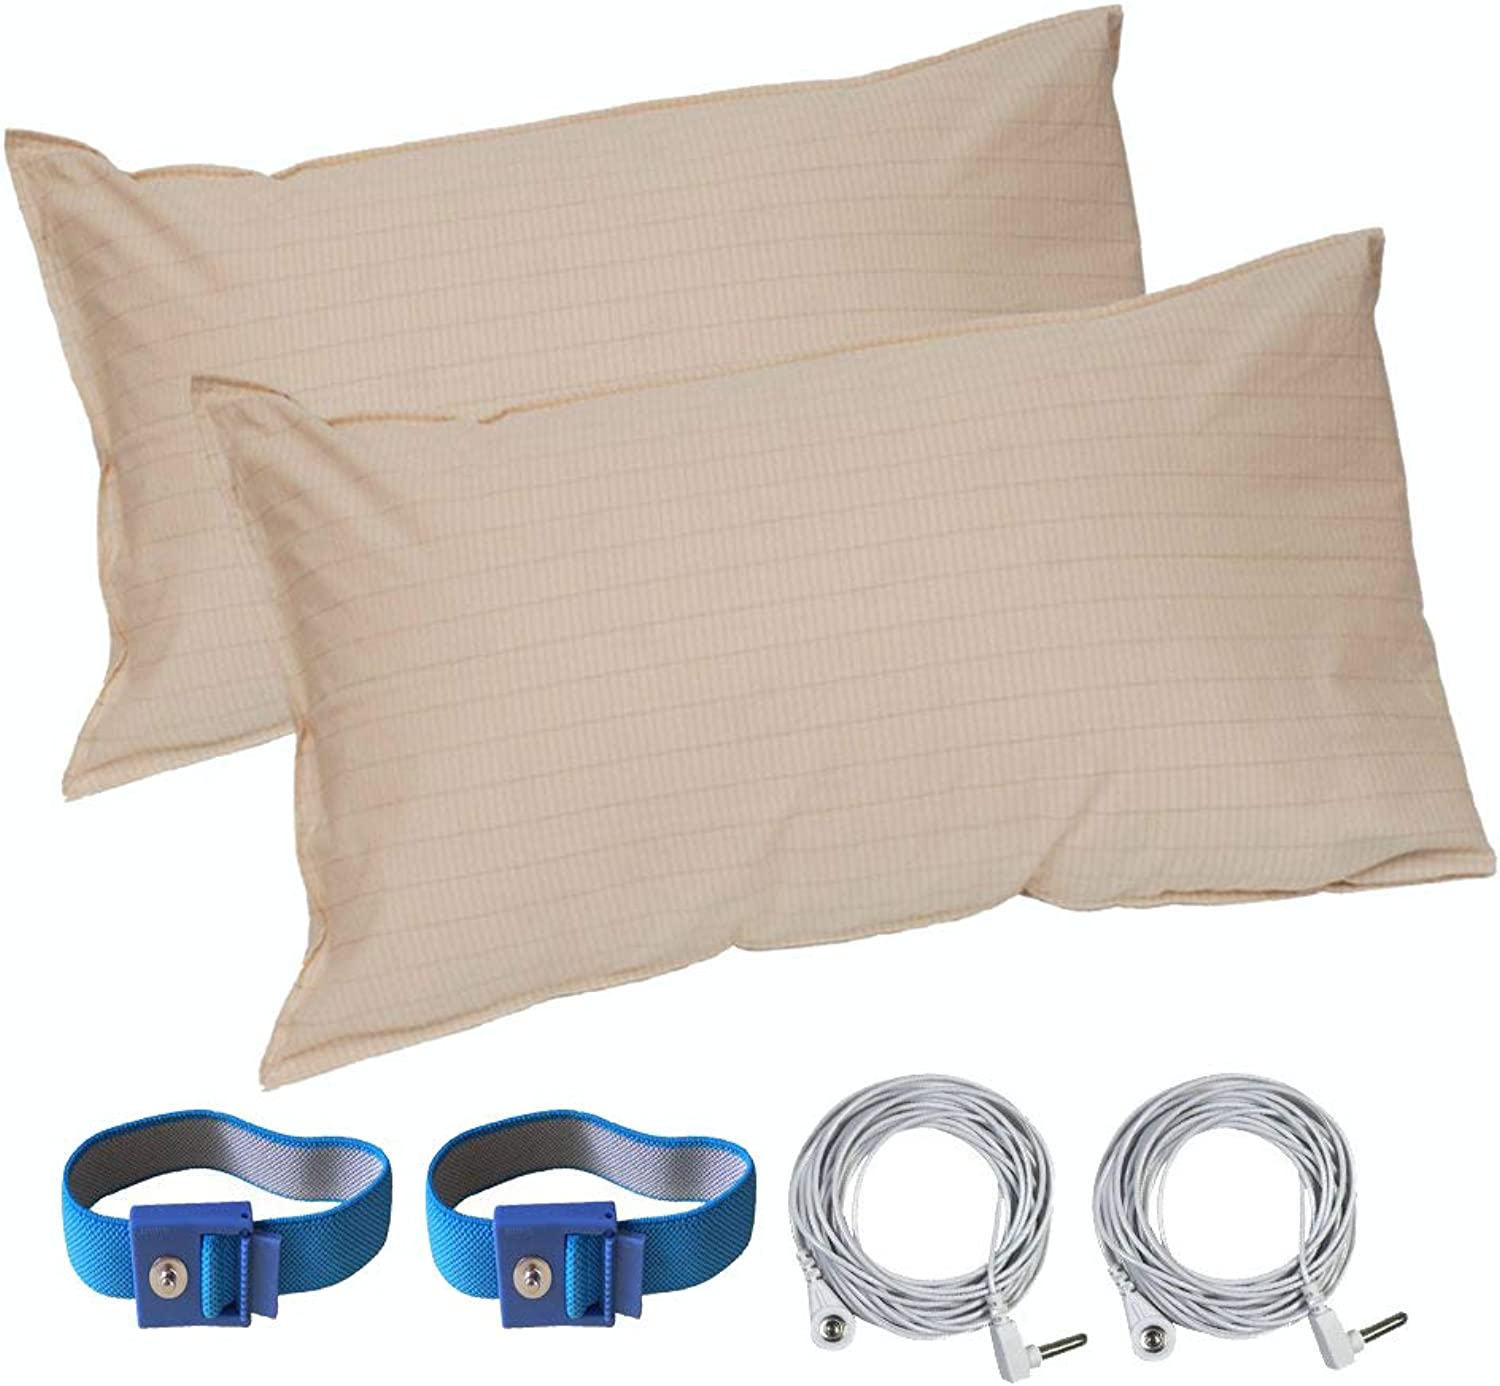 LandKissing Grounding Pillow Case (2 Sets) (Extra Size 31 x20 ) Beige for Healthy Earthing Energy with 2 Straight Cords and 2 Grounding Bracelets